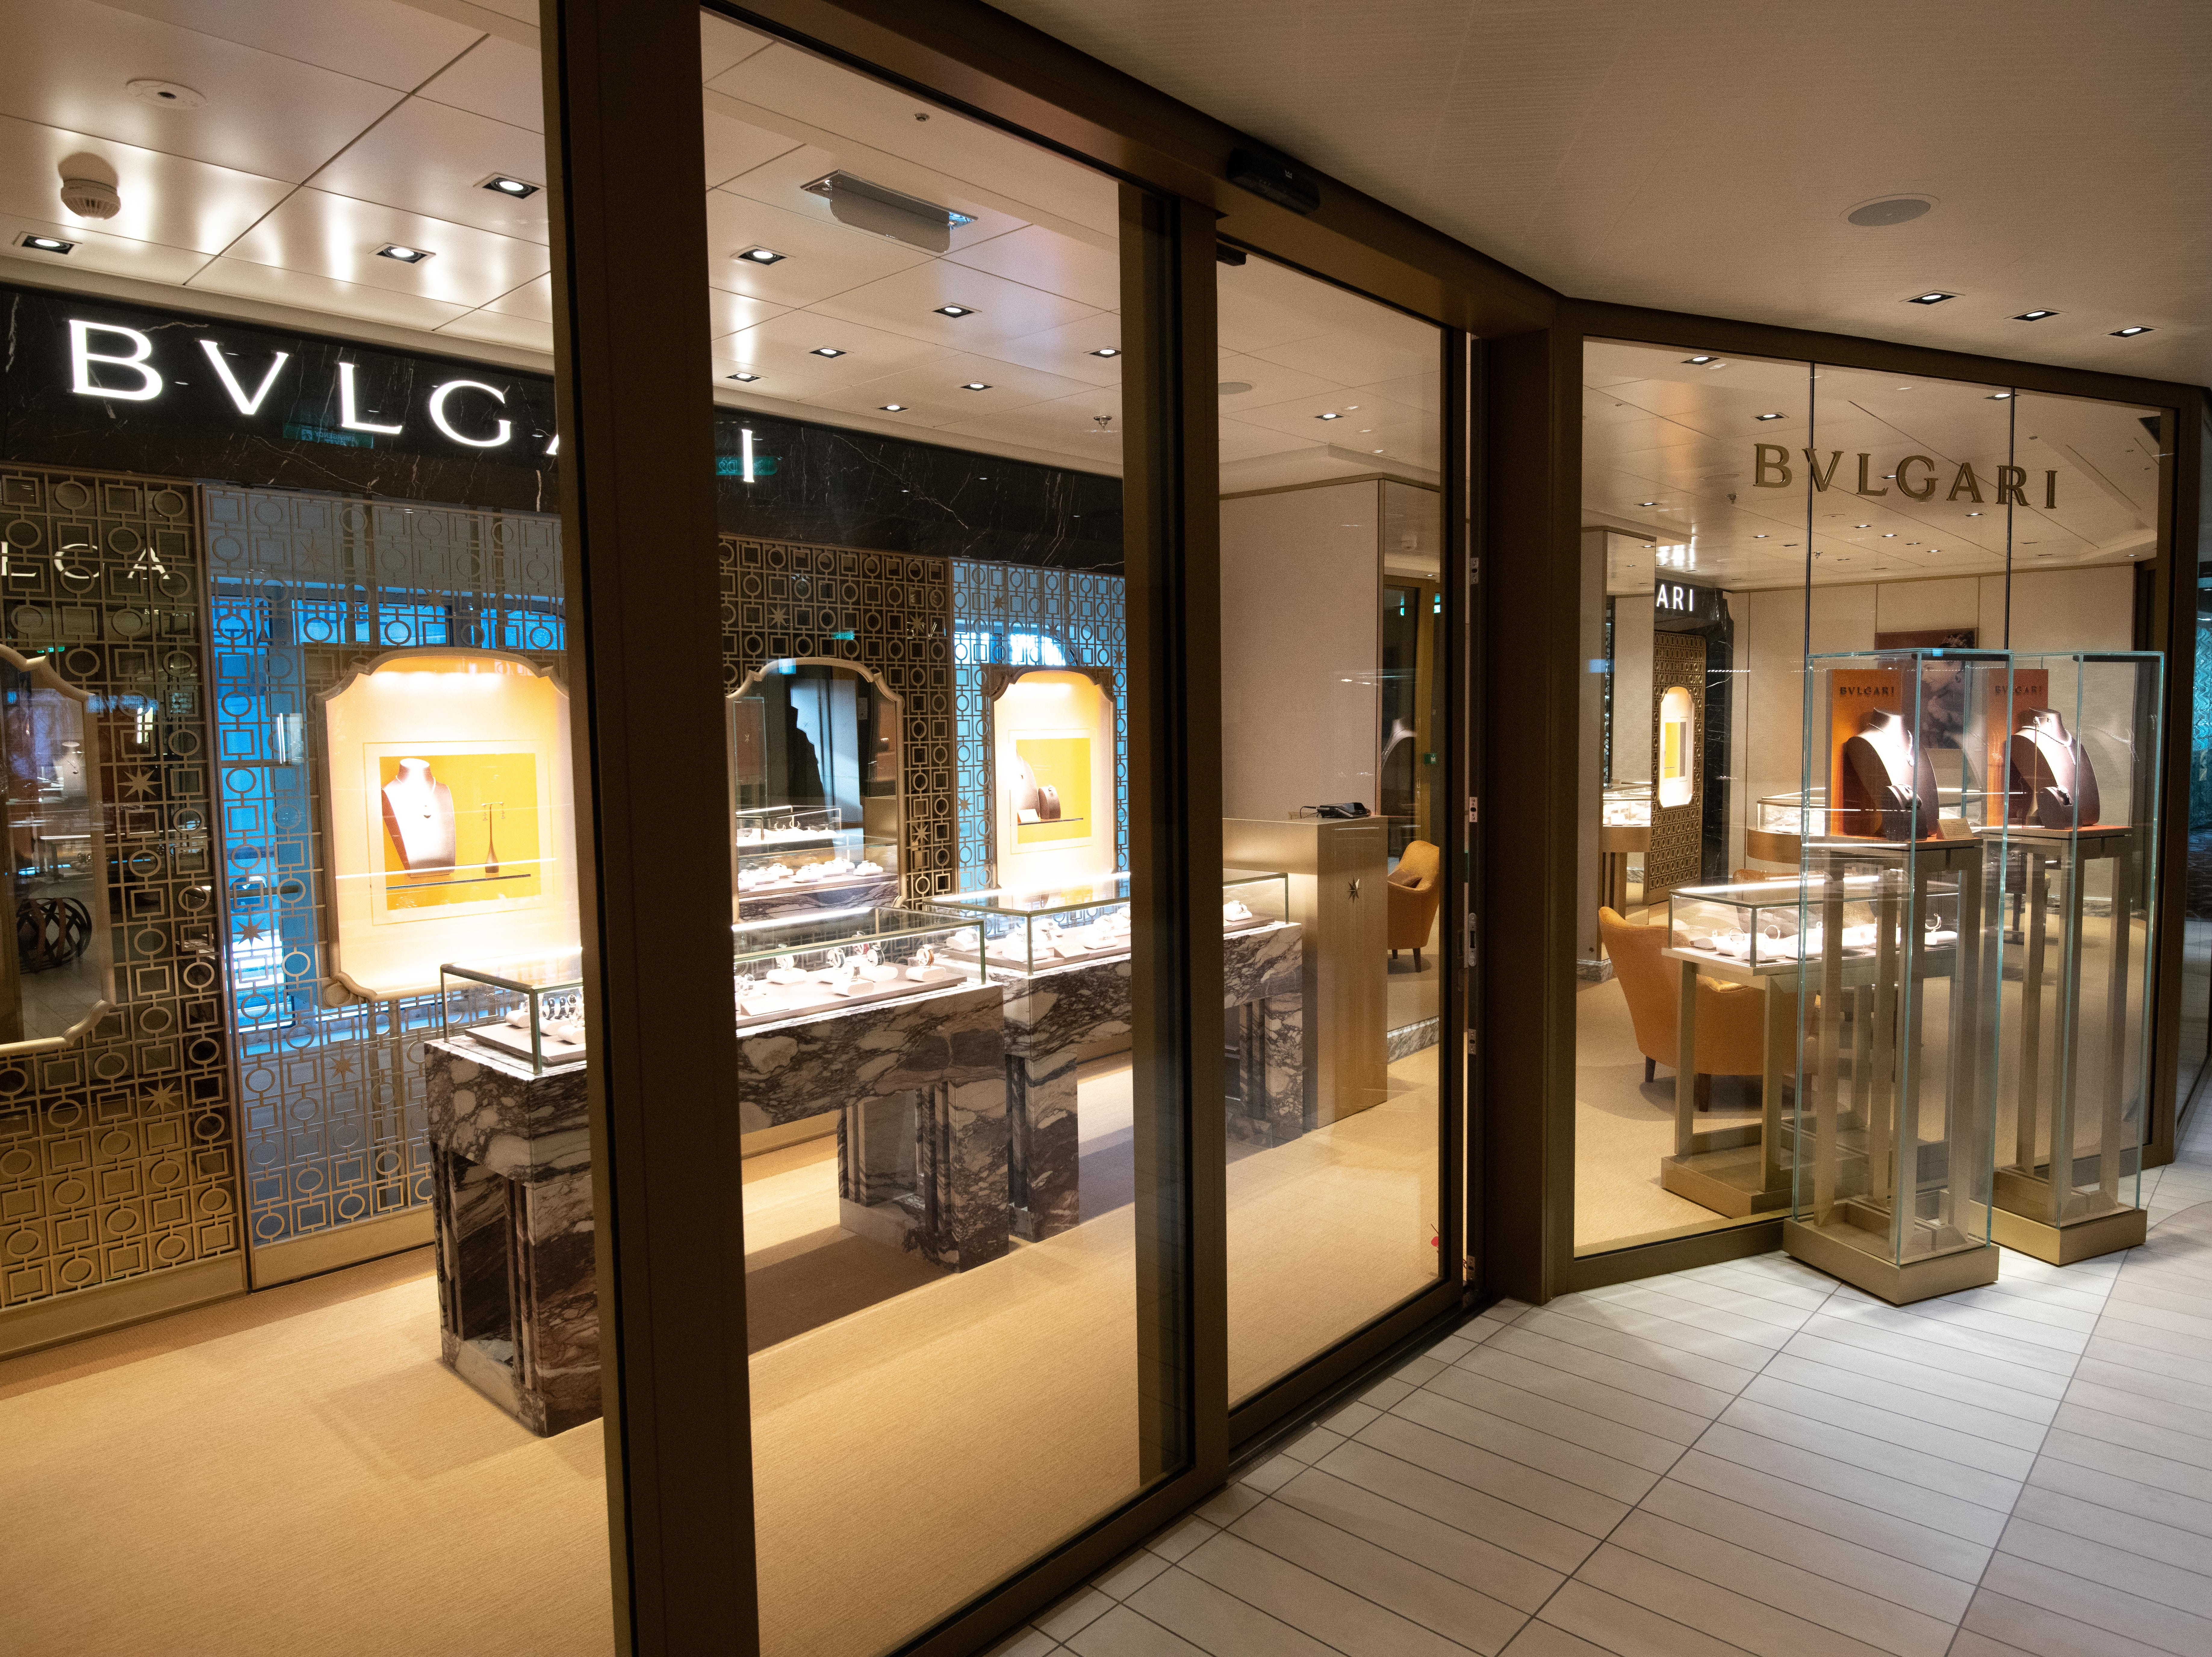 A Bvlgari store is among the high-end retail outlets on Celebrity Edge.